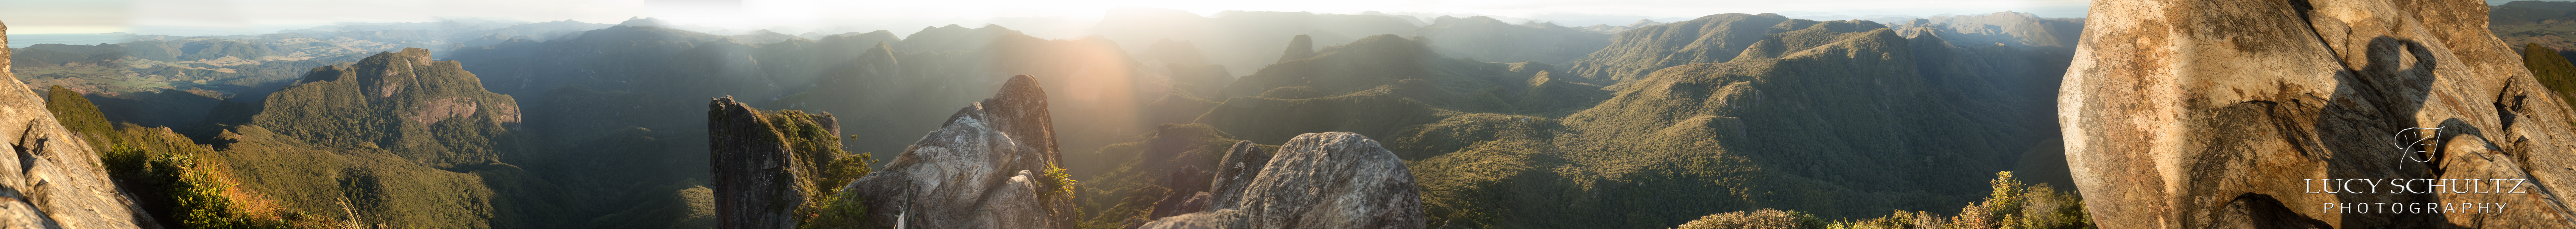 360 Degree view from the top of the pinnacles